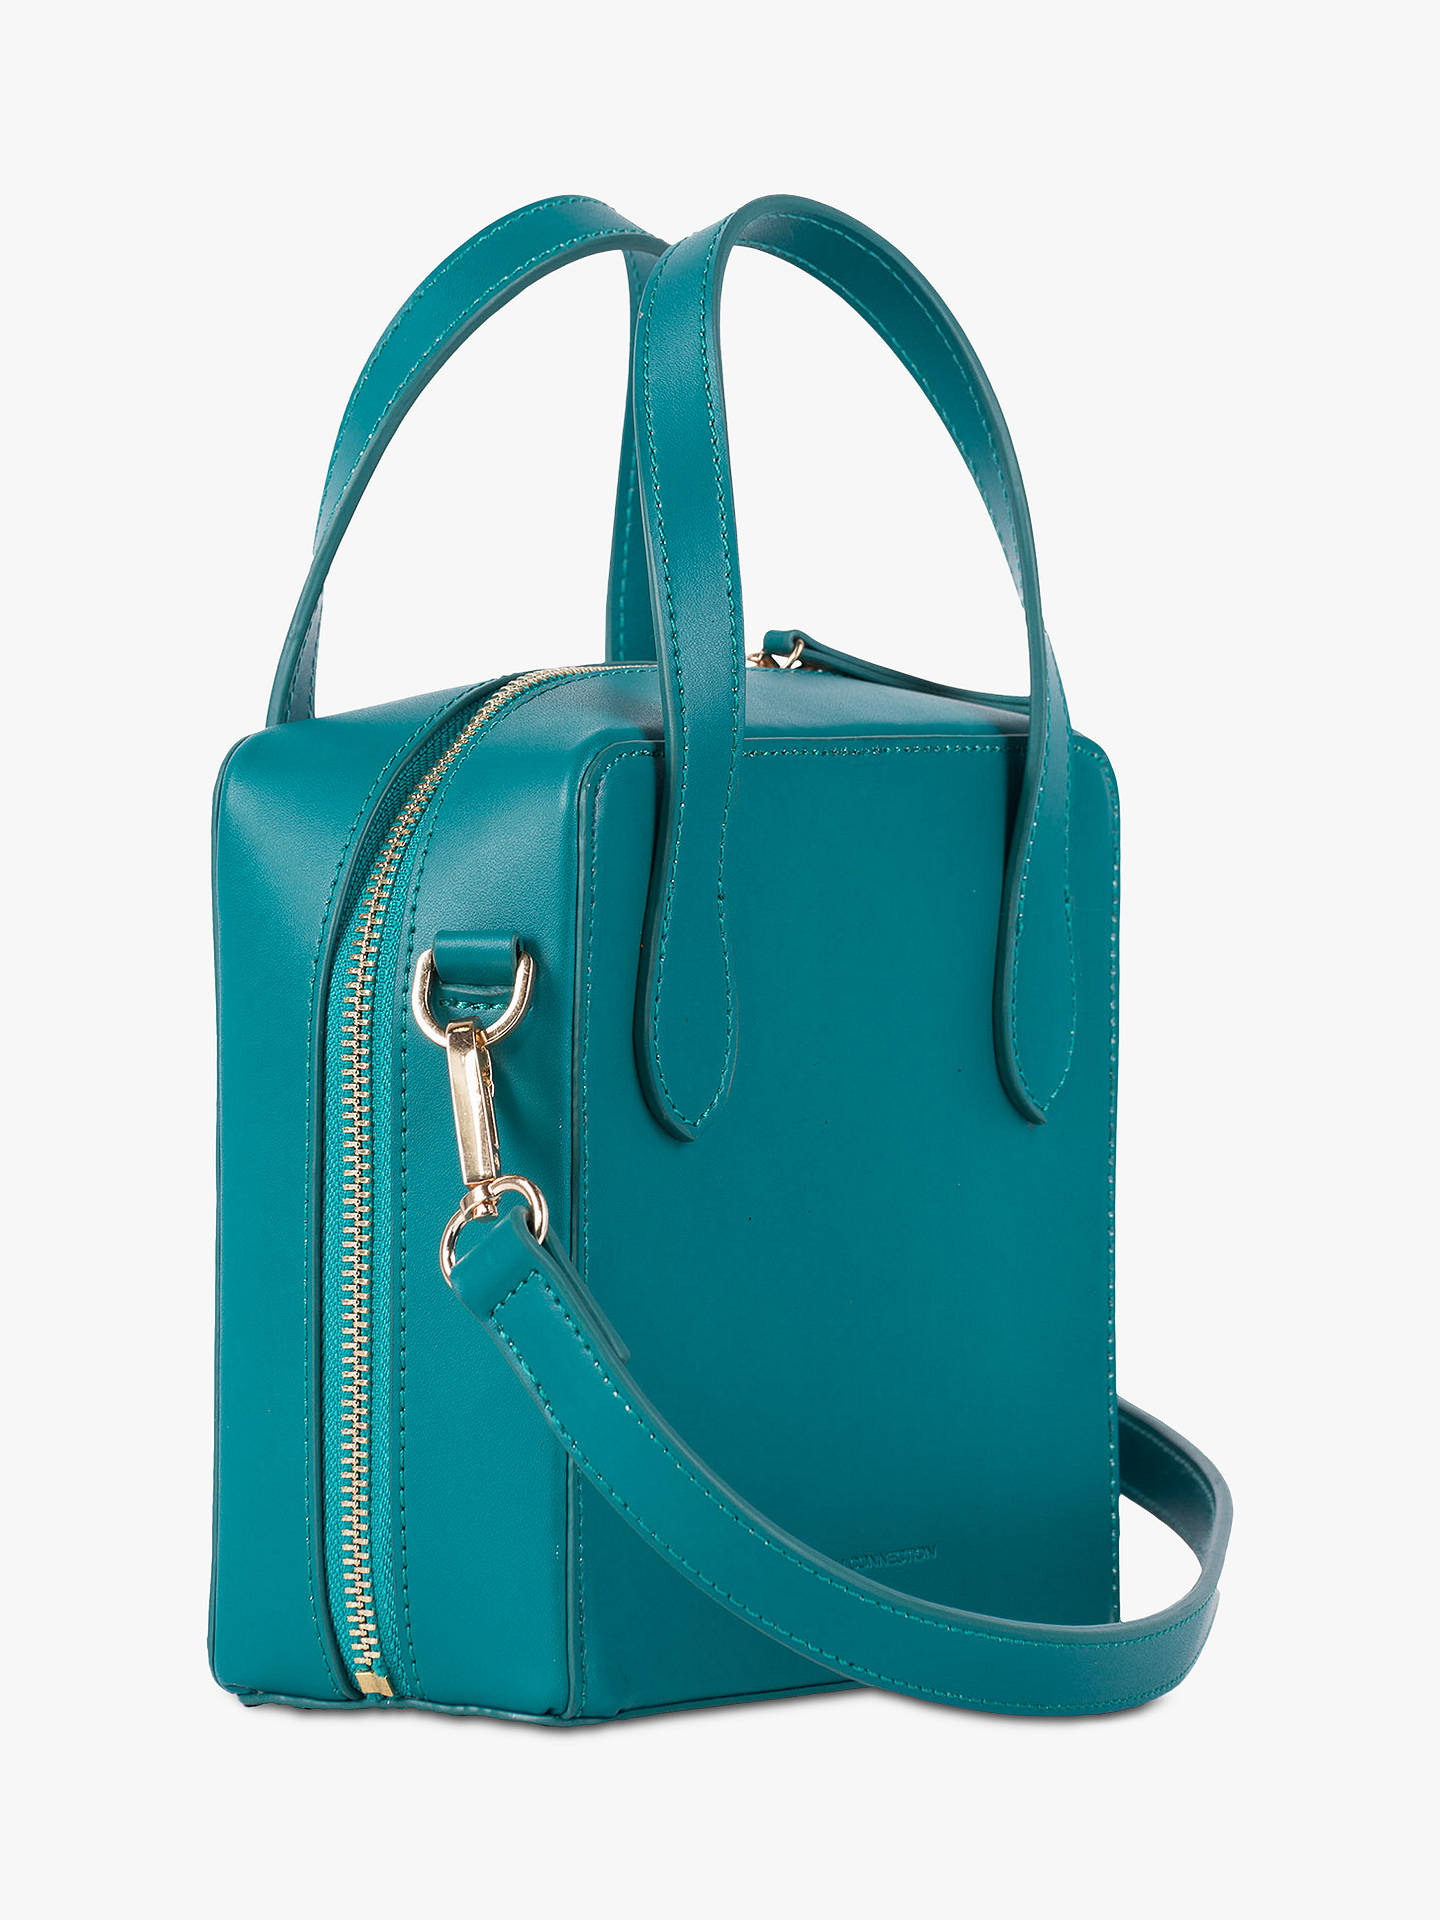 7196a7e0d Buy French Connection Lula Recycled Leather Cross Body Bag, Teal Blast  Online at johnlewis.